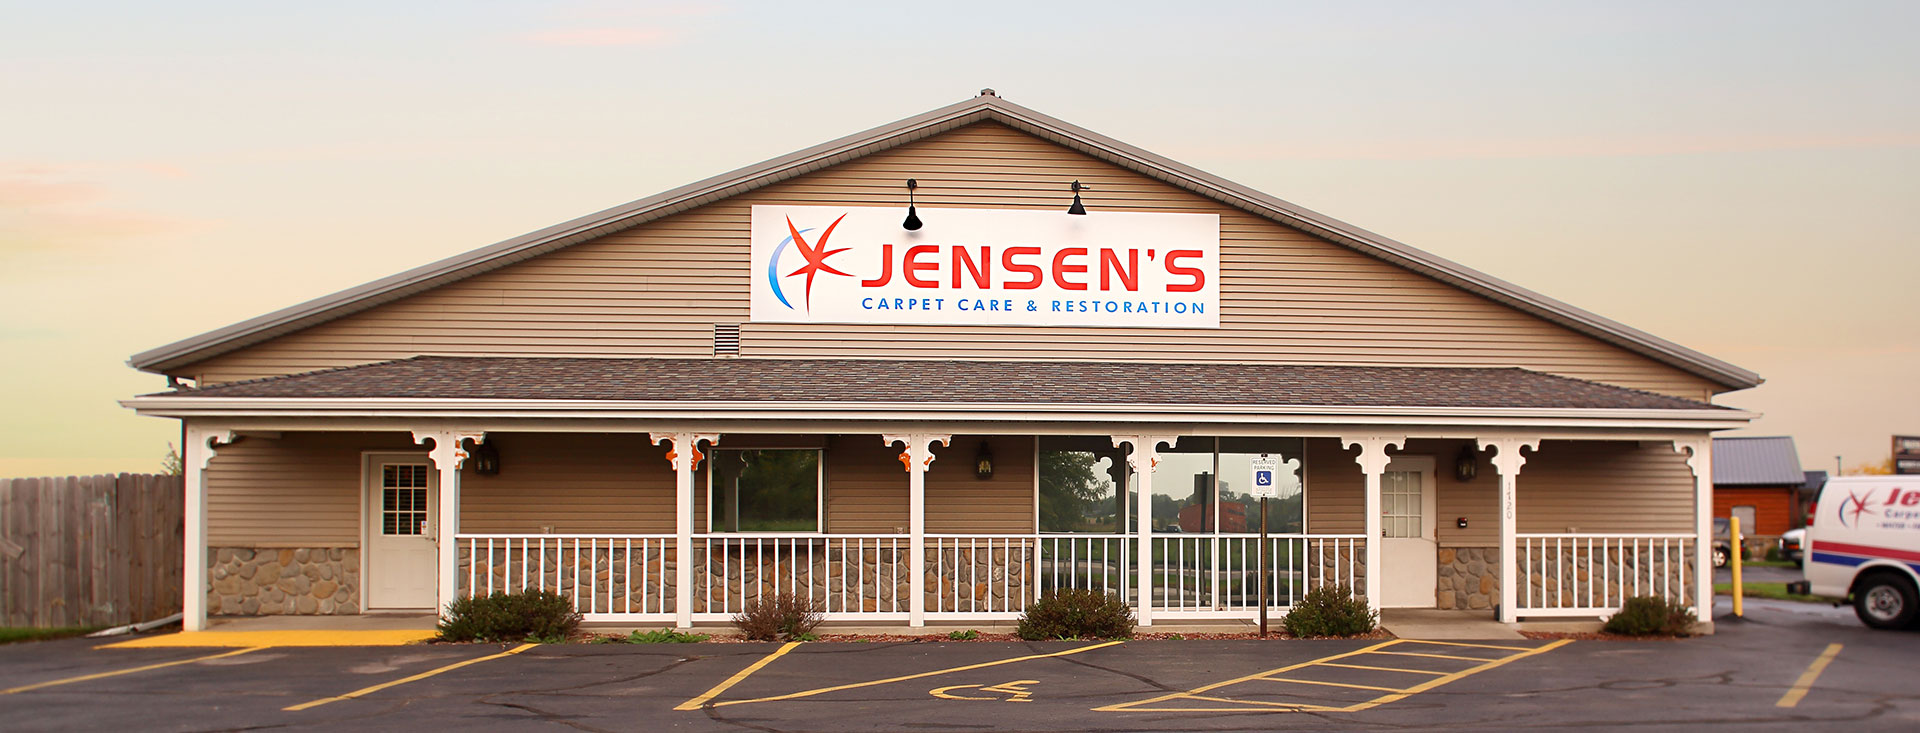 Contact Jensen's Carpet Care & Restoration